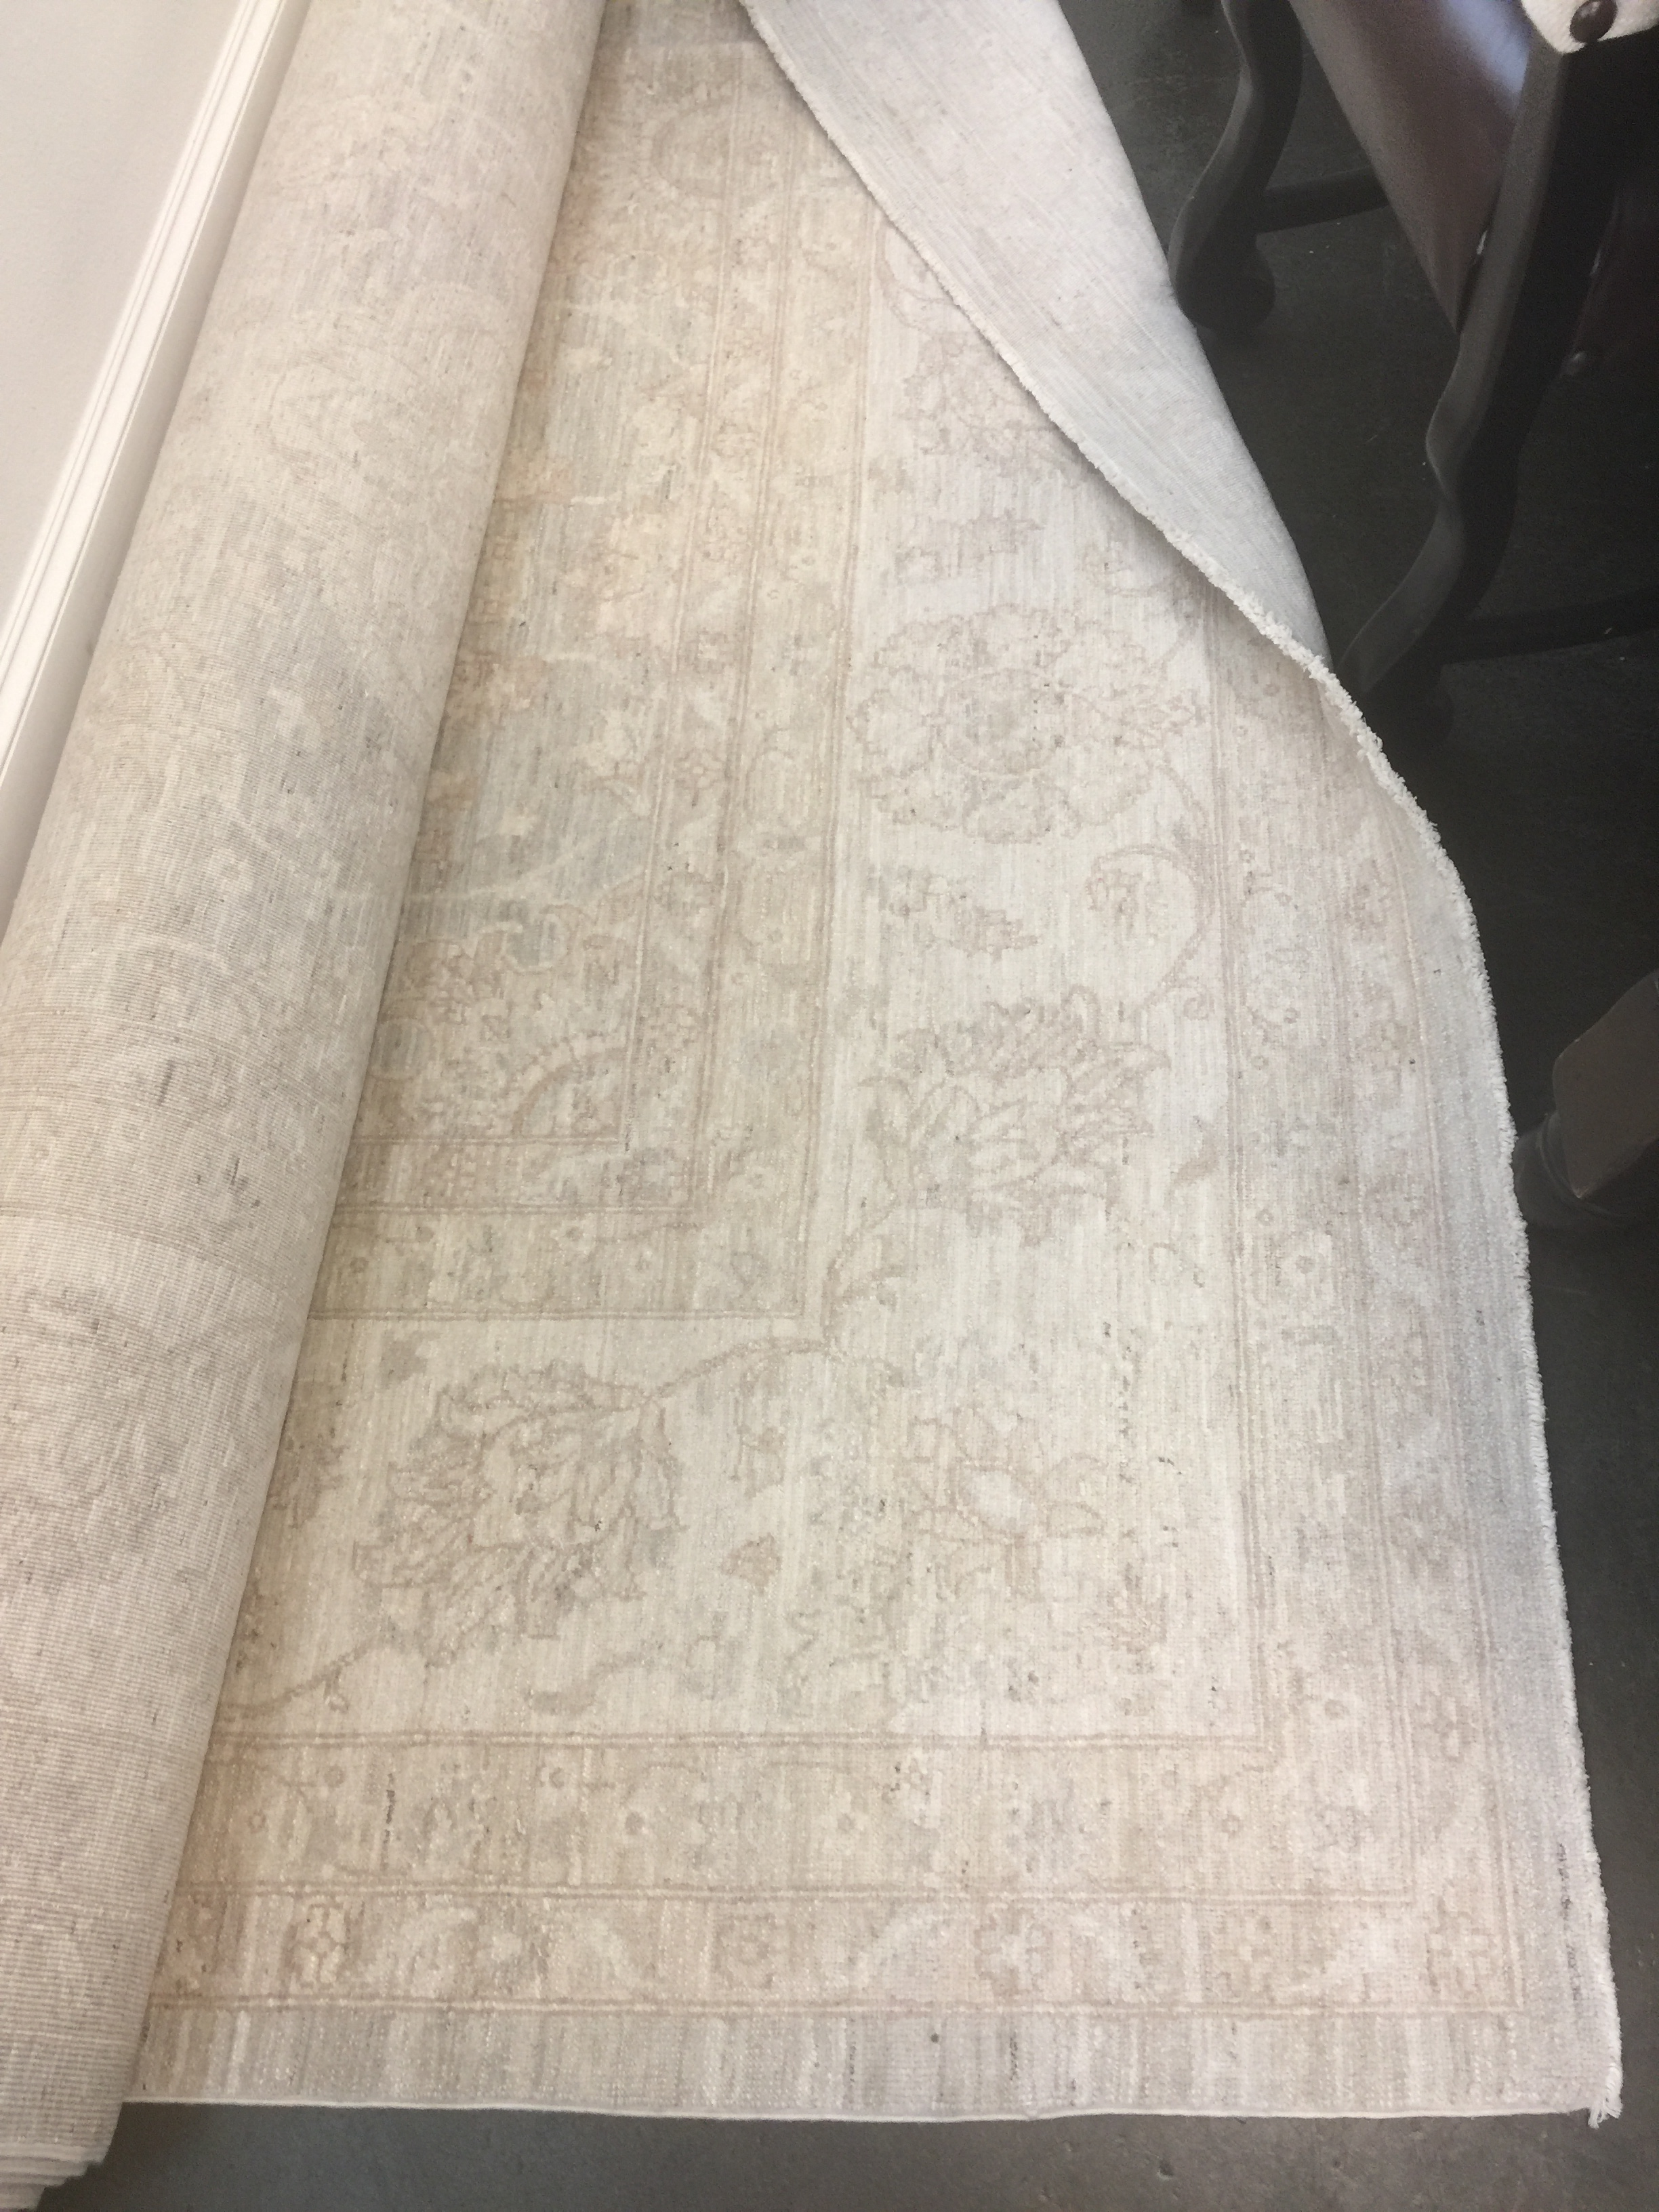 FOR SALE - 10 x 14 wool neutral Oushak rug